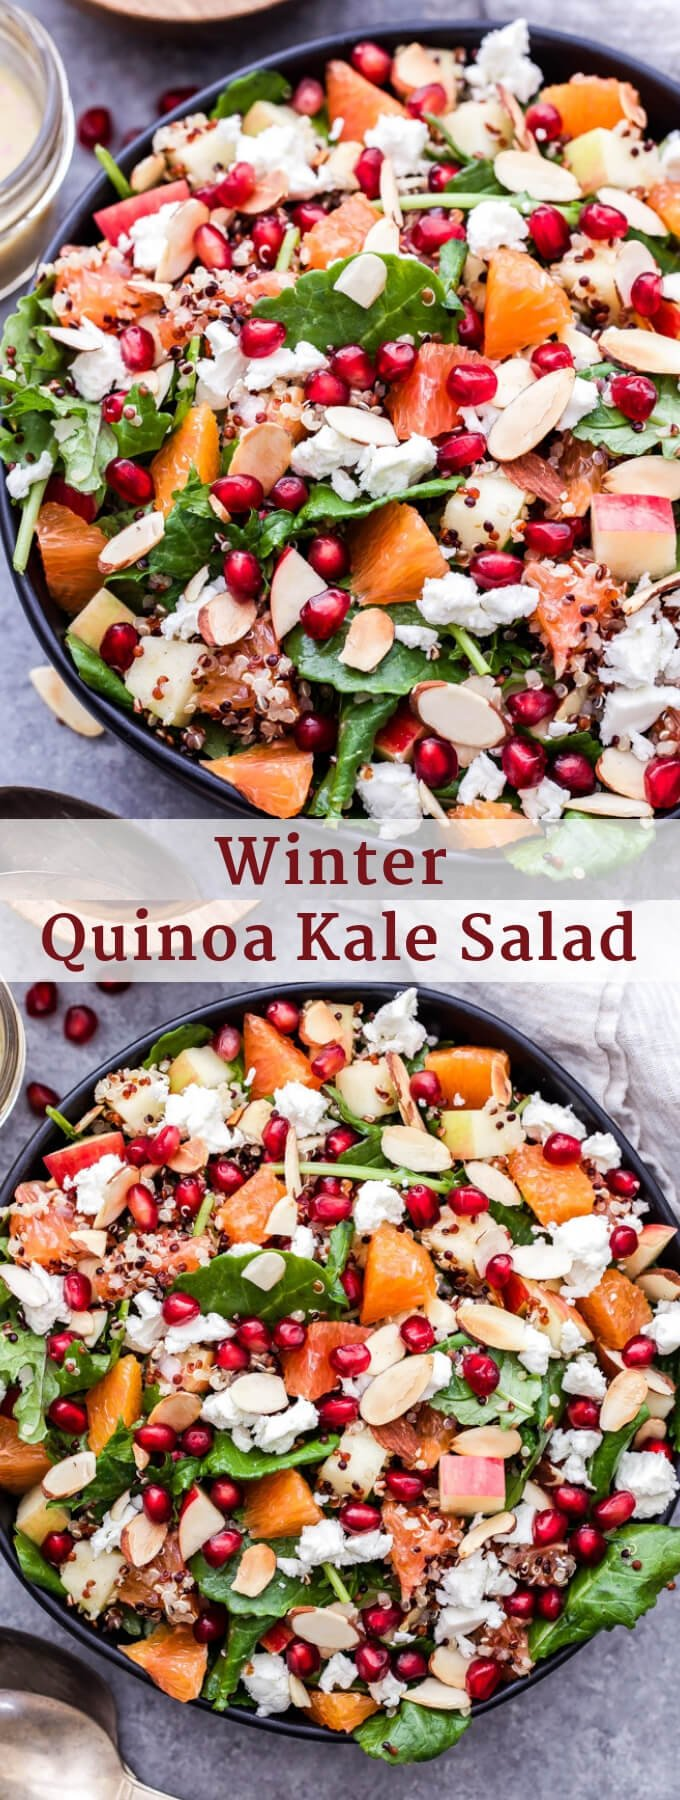 This Winter Quinoa Kale Salad is full of winter produce, hearty quinoa and peppery baby kale! It's a great alternative to your typical lettuce salad. #quinoa #salad #kale #winter #glutenfree #vegetarian